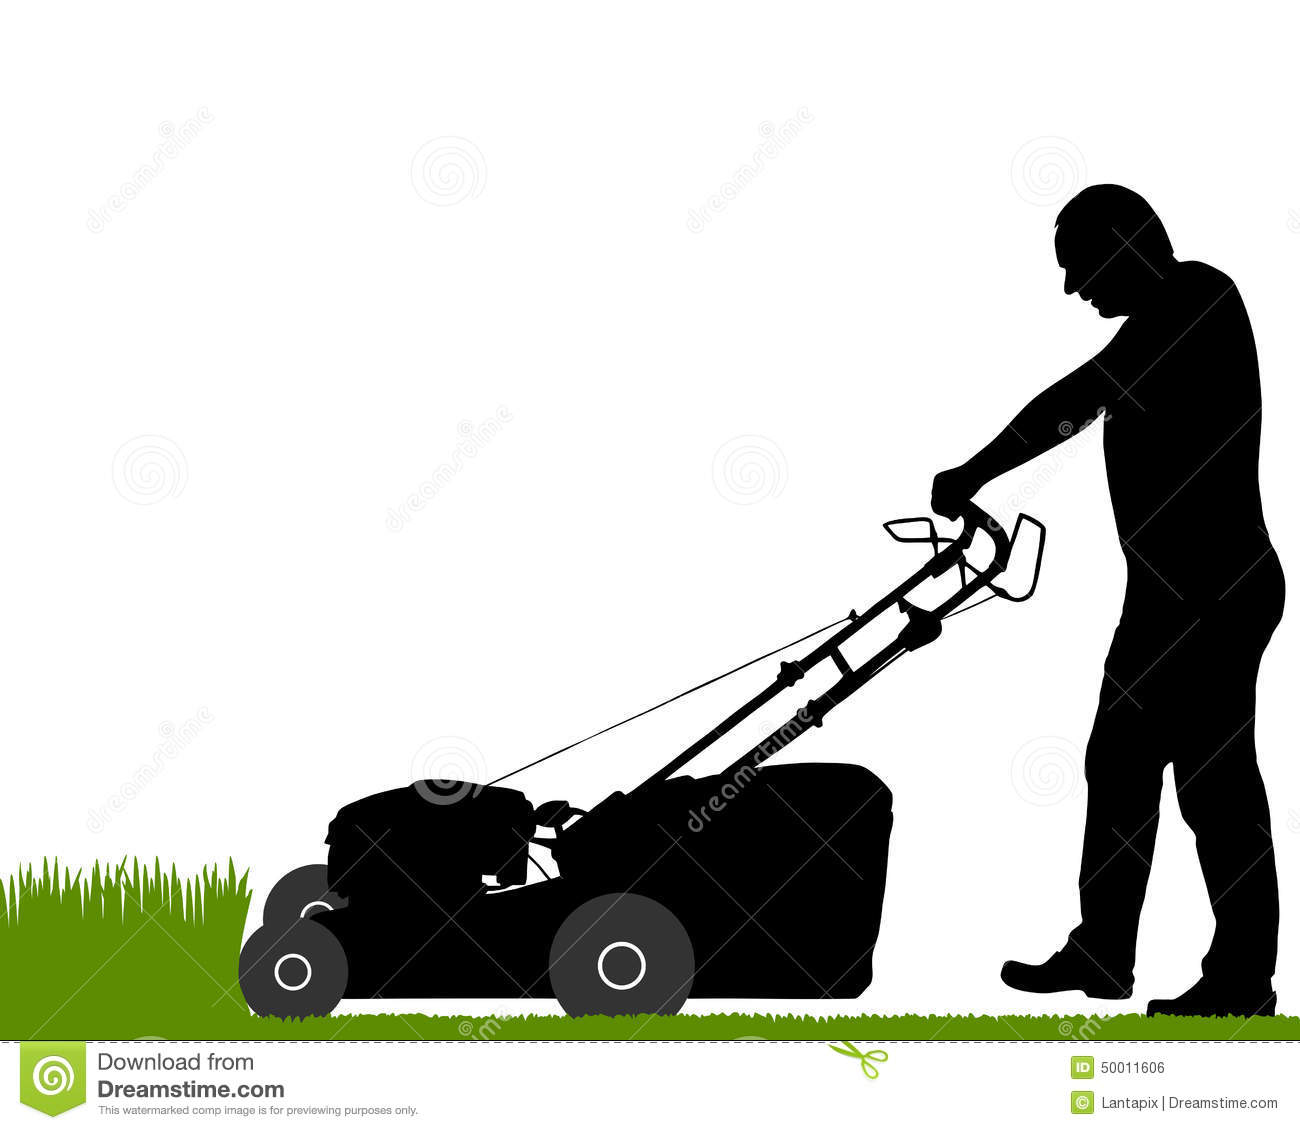 Detailed and accurate illustration of man with lawn-mower.